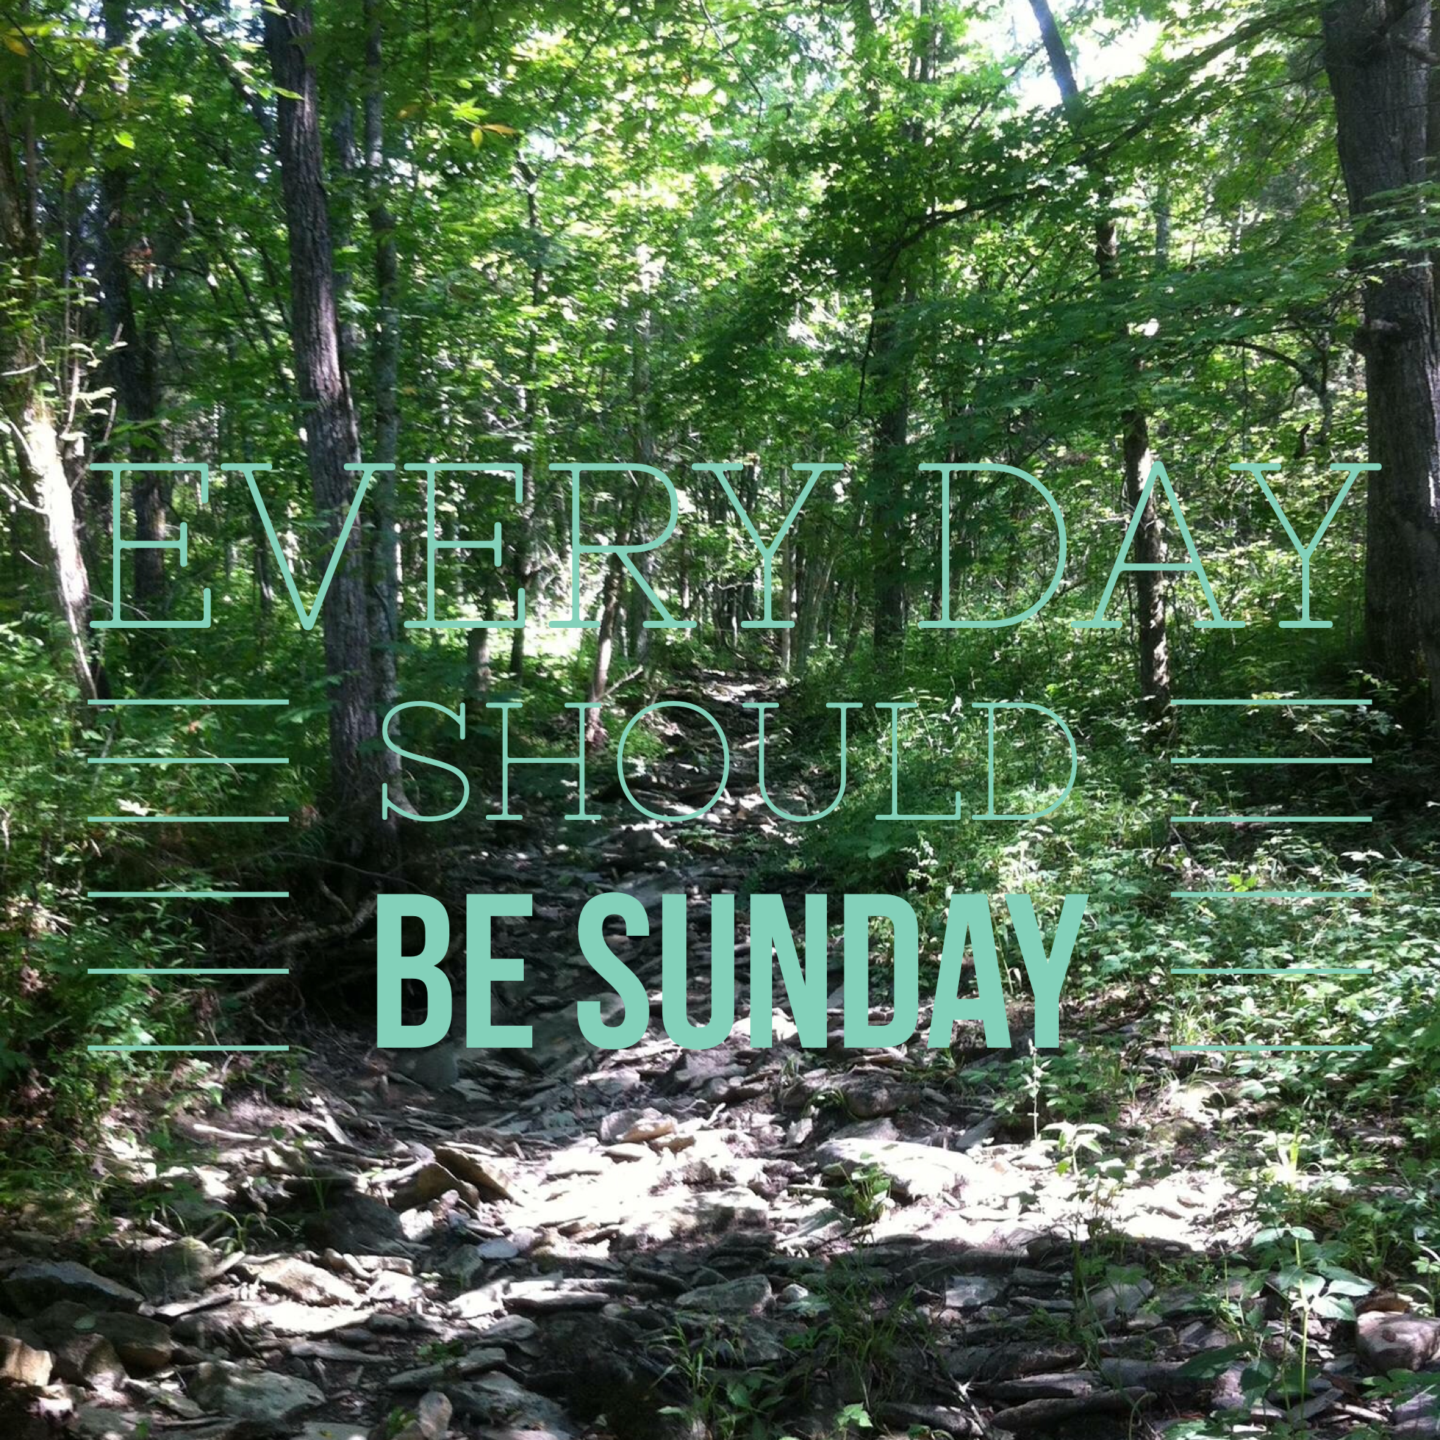 Every day should be sunday forest pic with title added